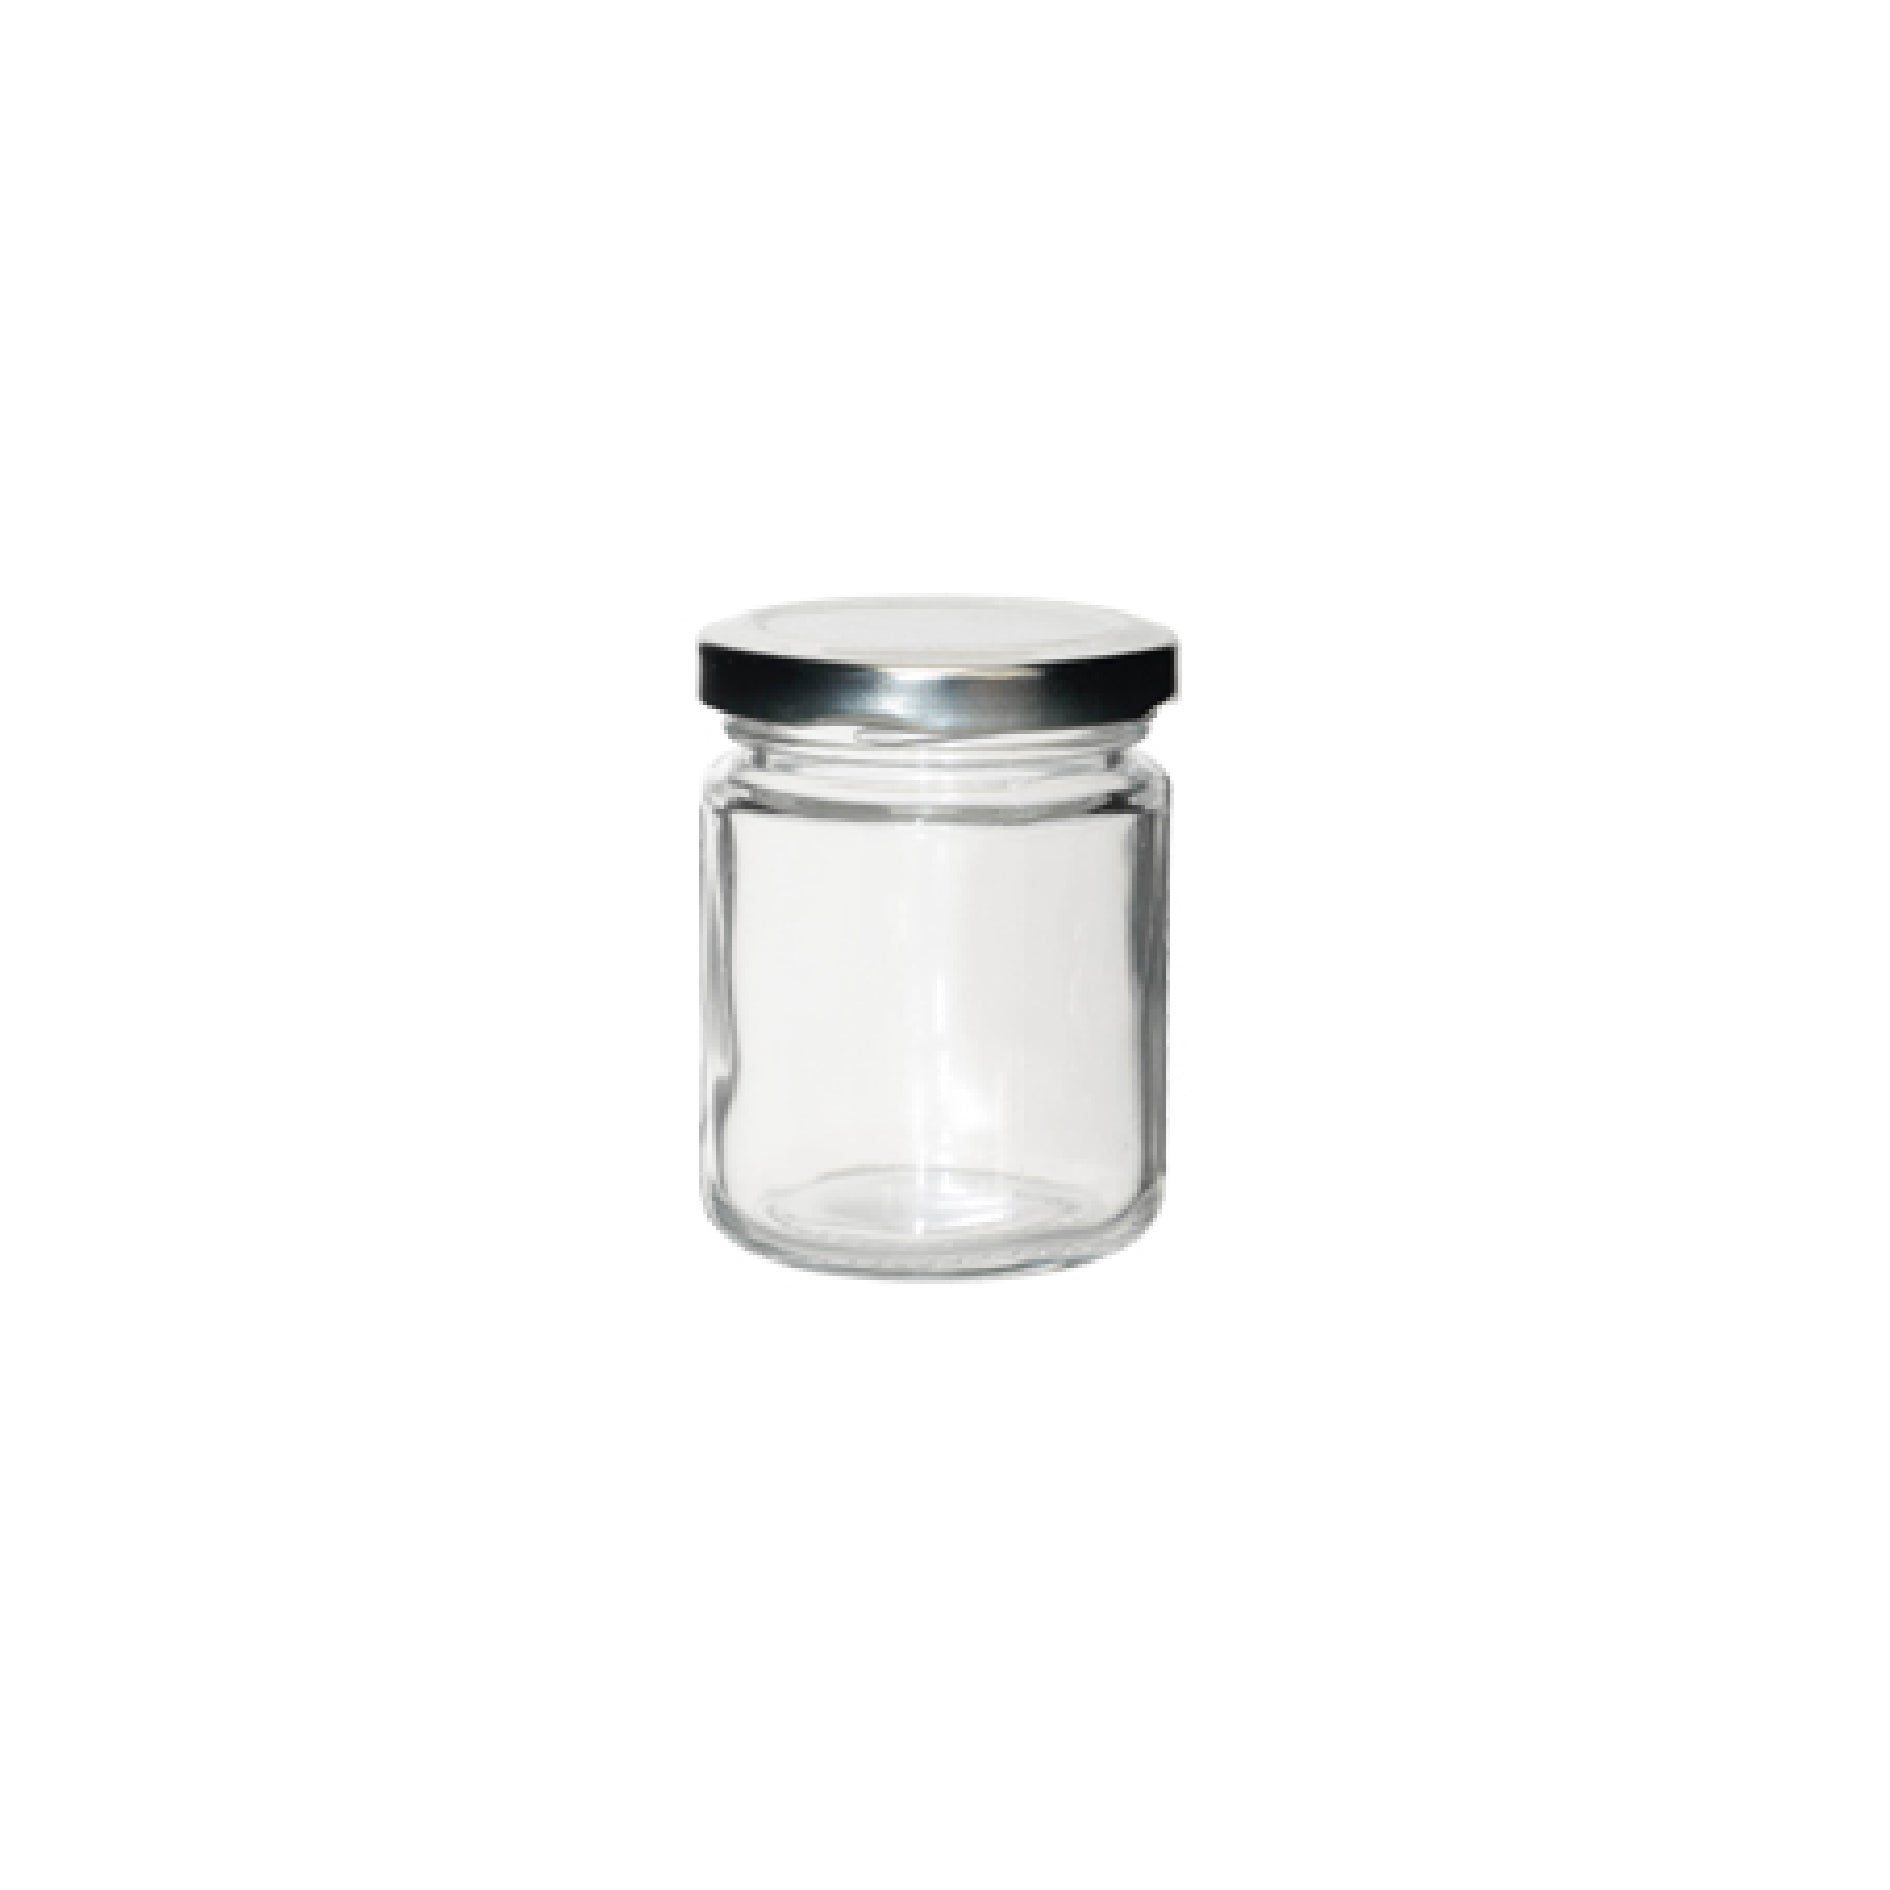 MASON JAR SCREW TOP - 100ml